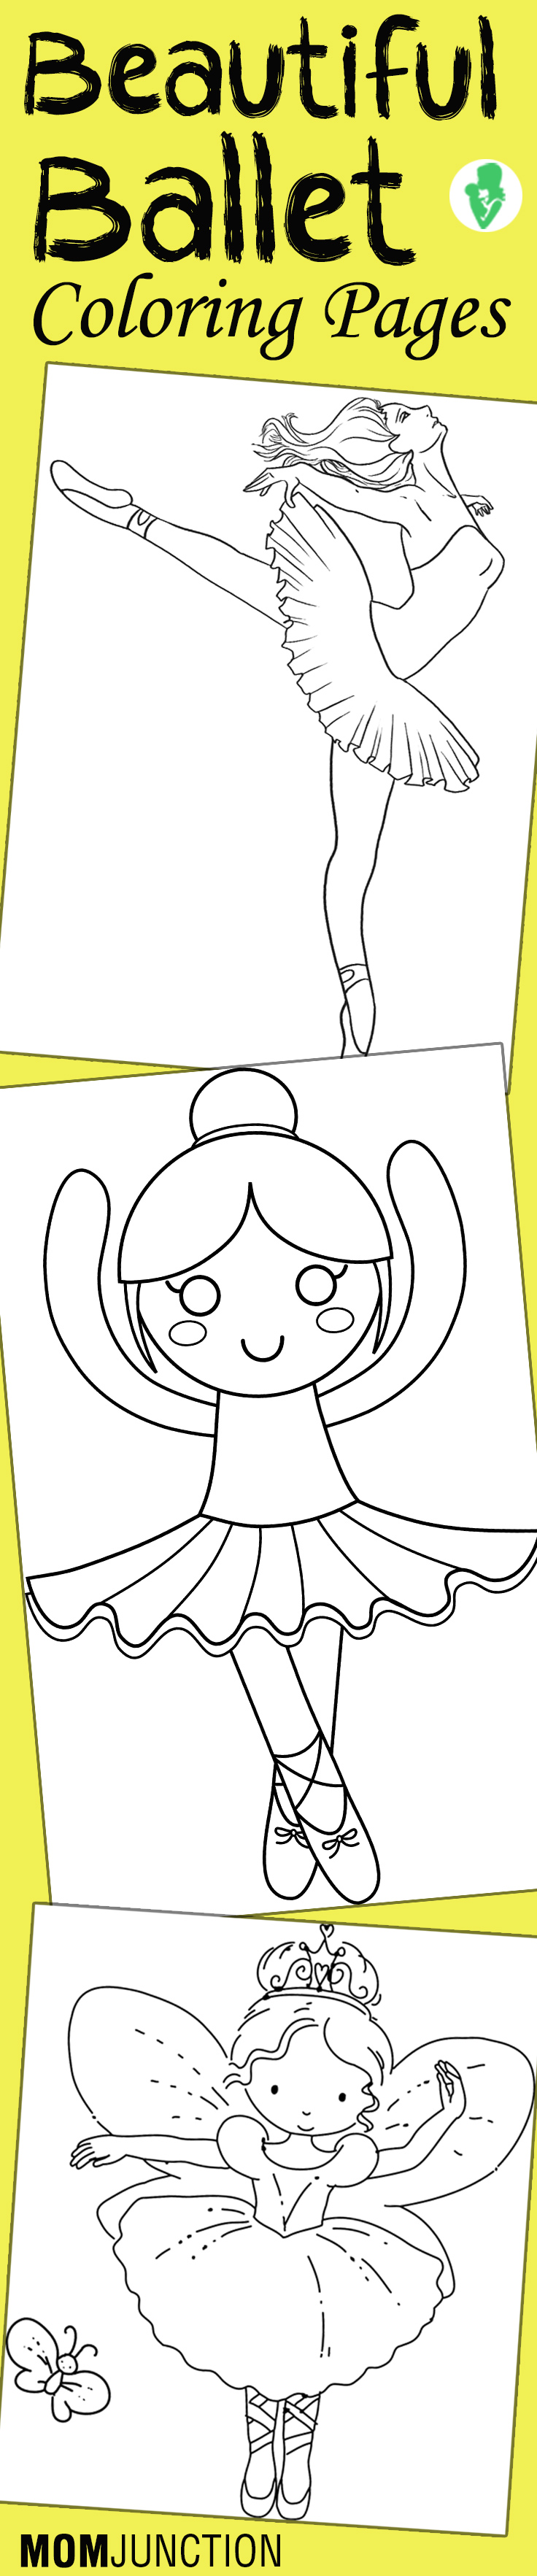 Princess ballerina coloring pages